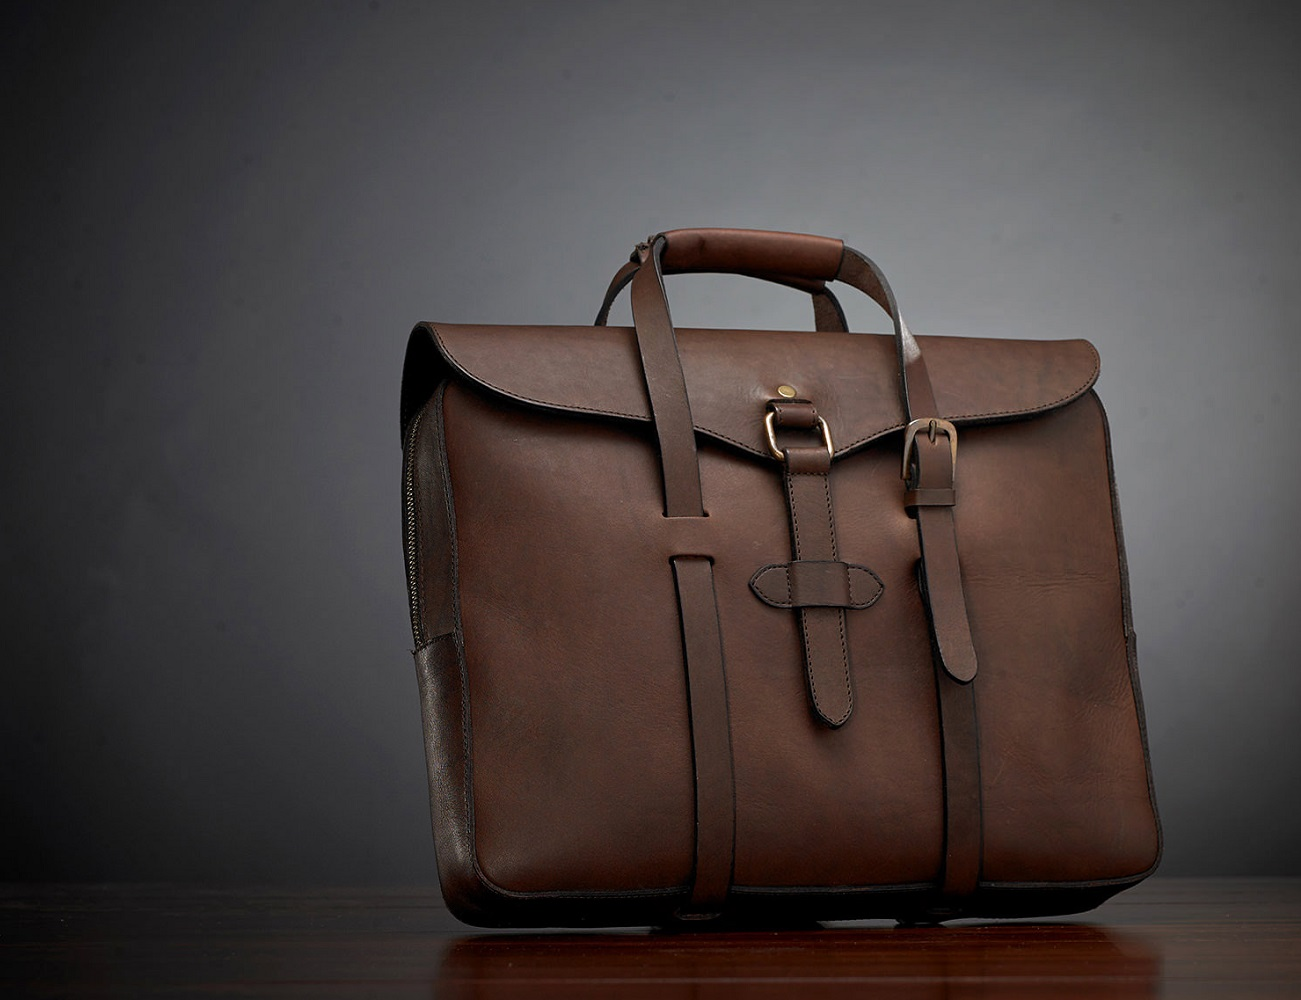 The C.O. Series Leather Bag by Cravar